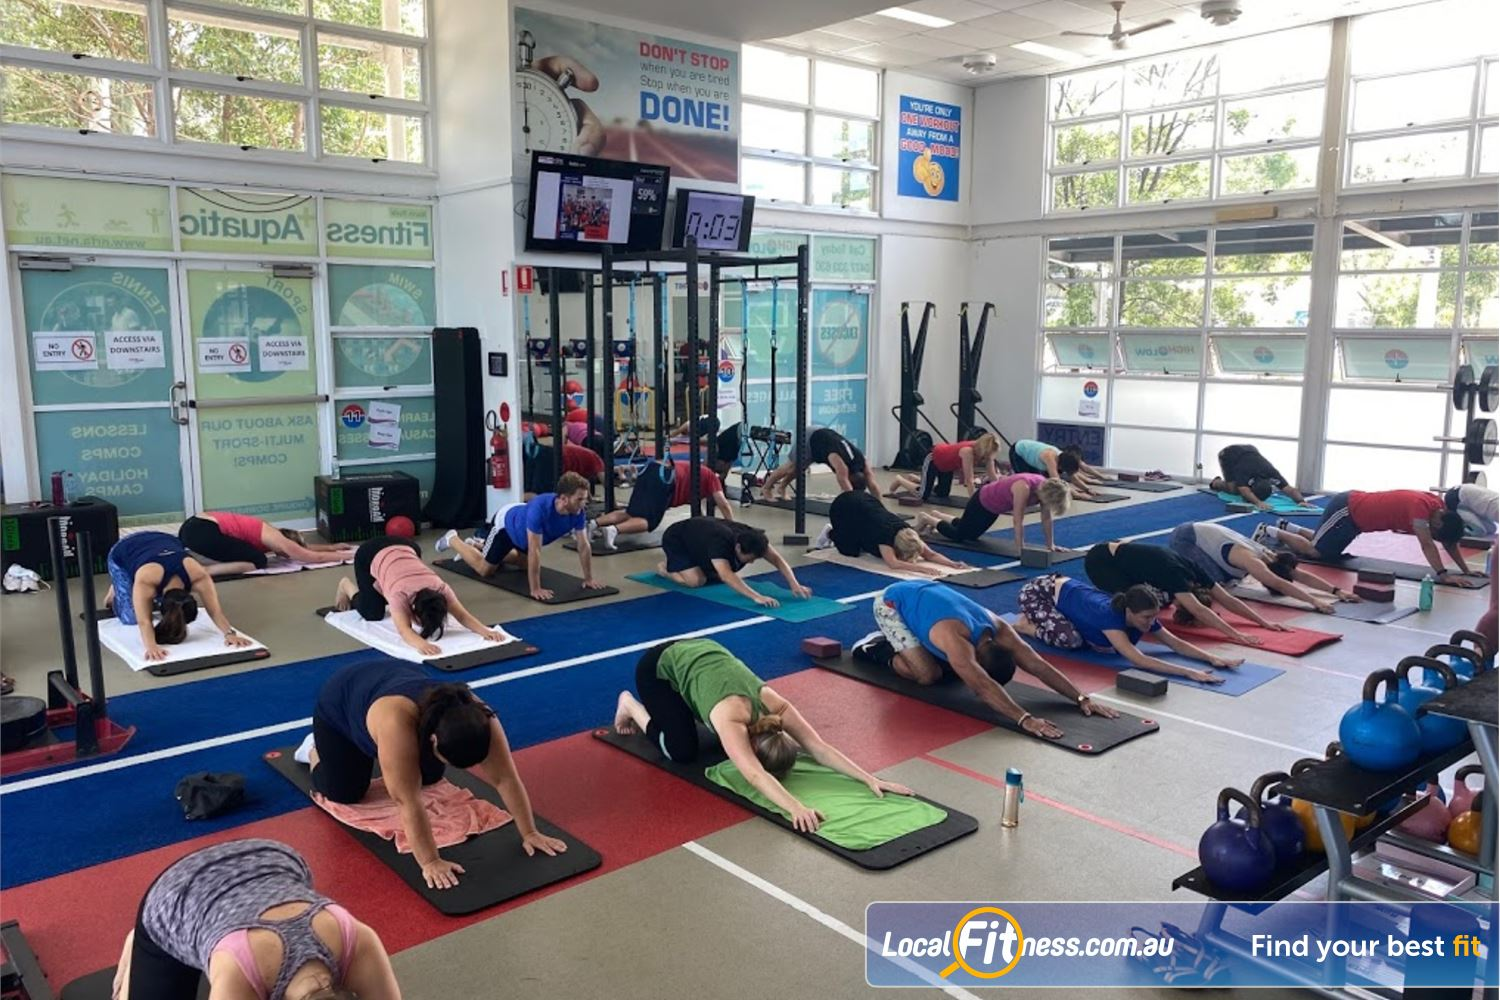 North Ryde Fitness & Aquatic North Ryde Popular classes include North Ryde Yoga, Boxing and more.